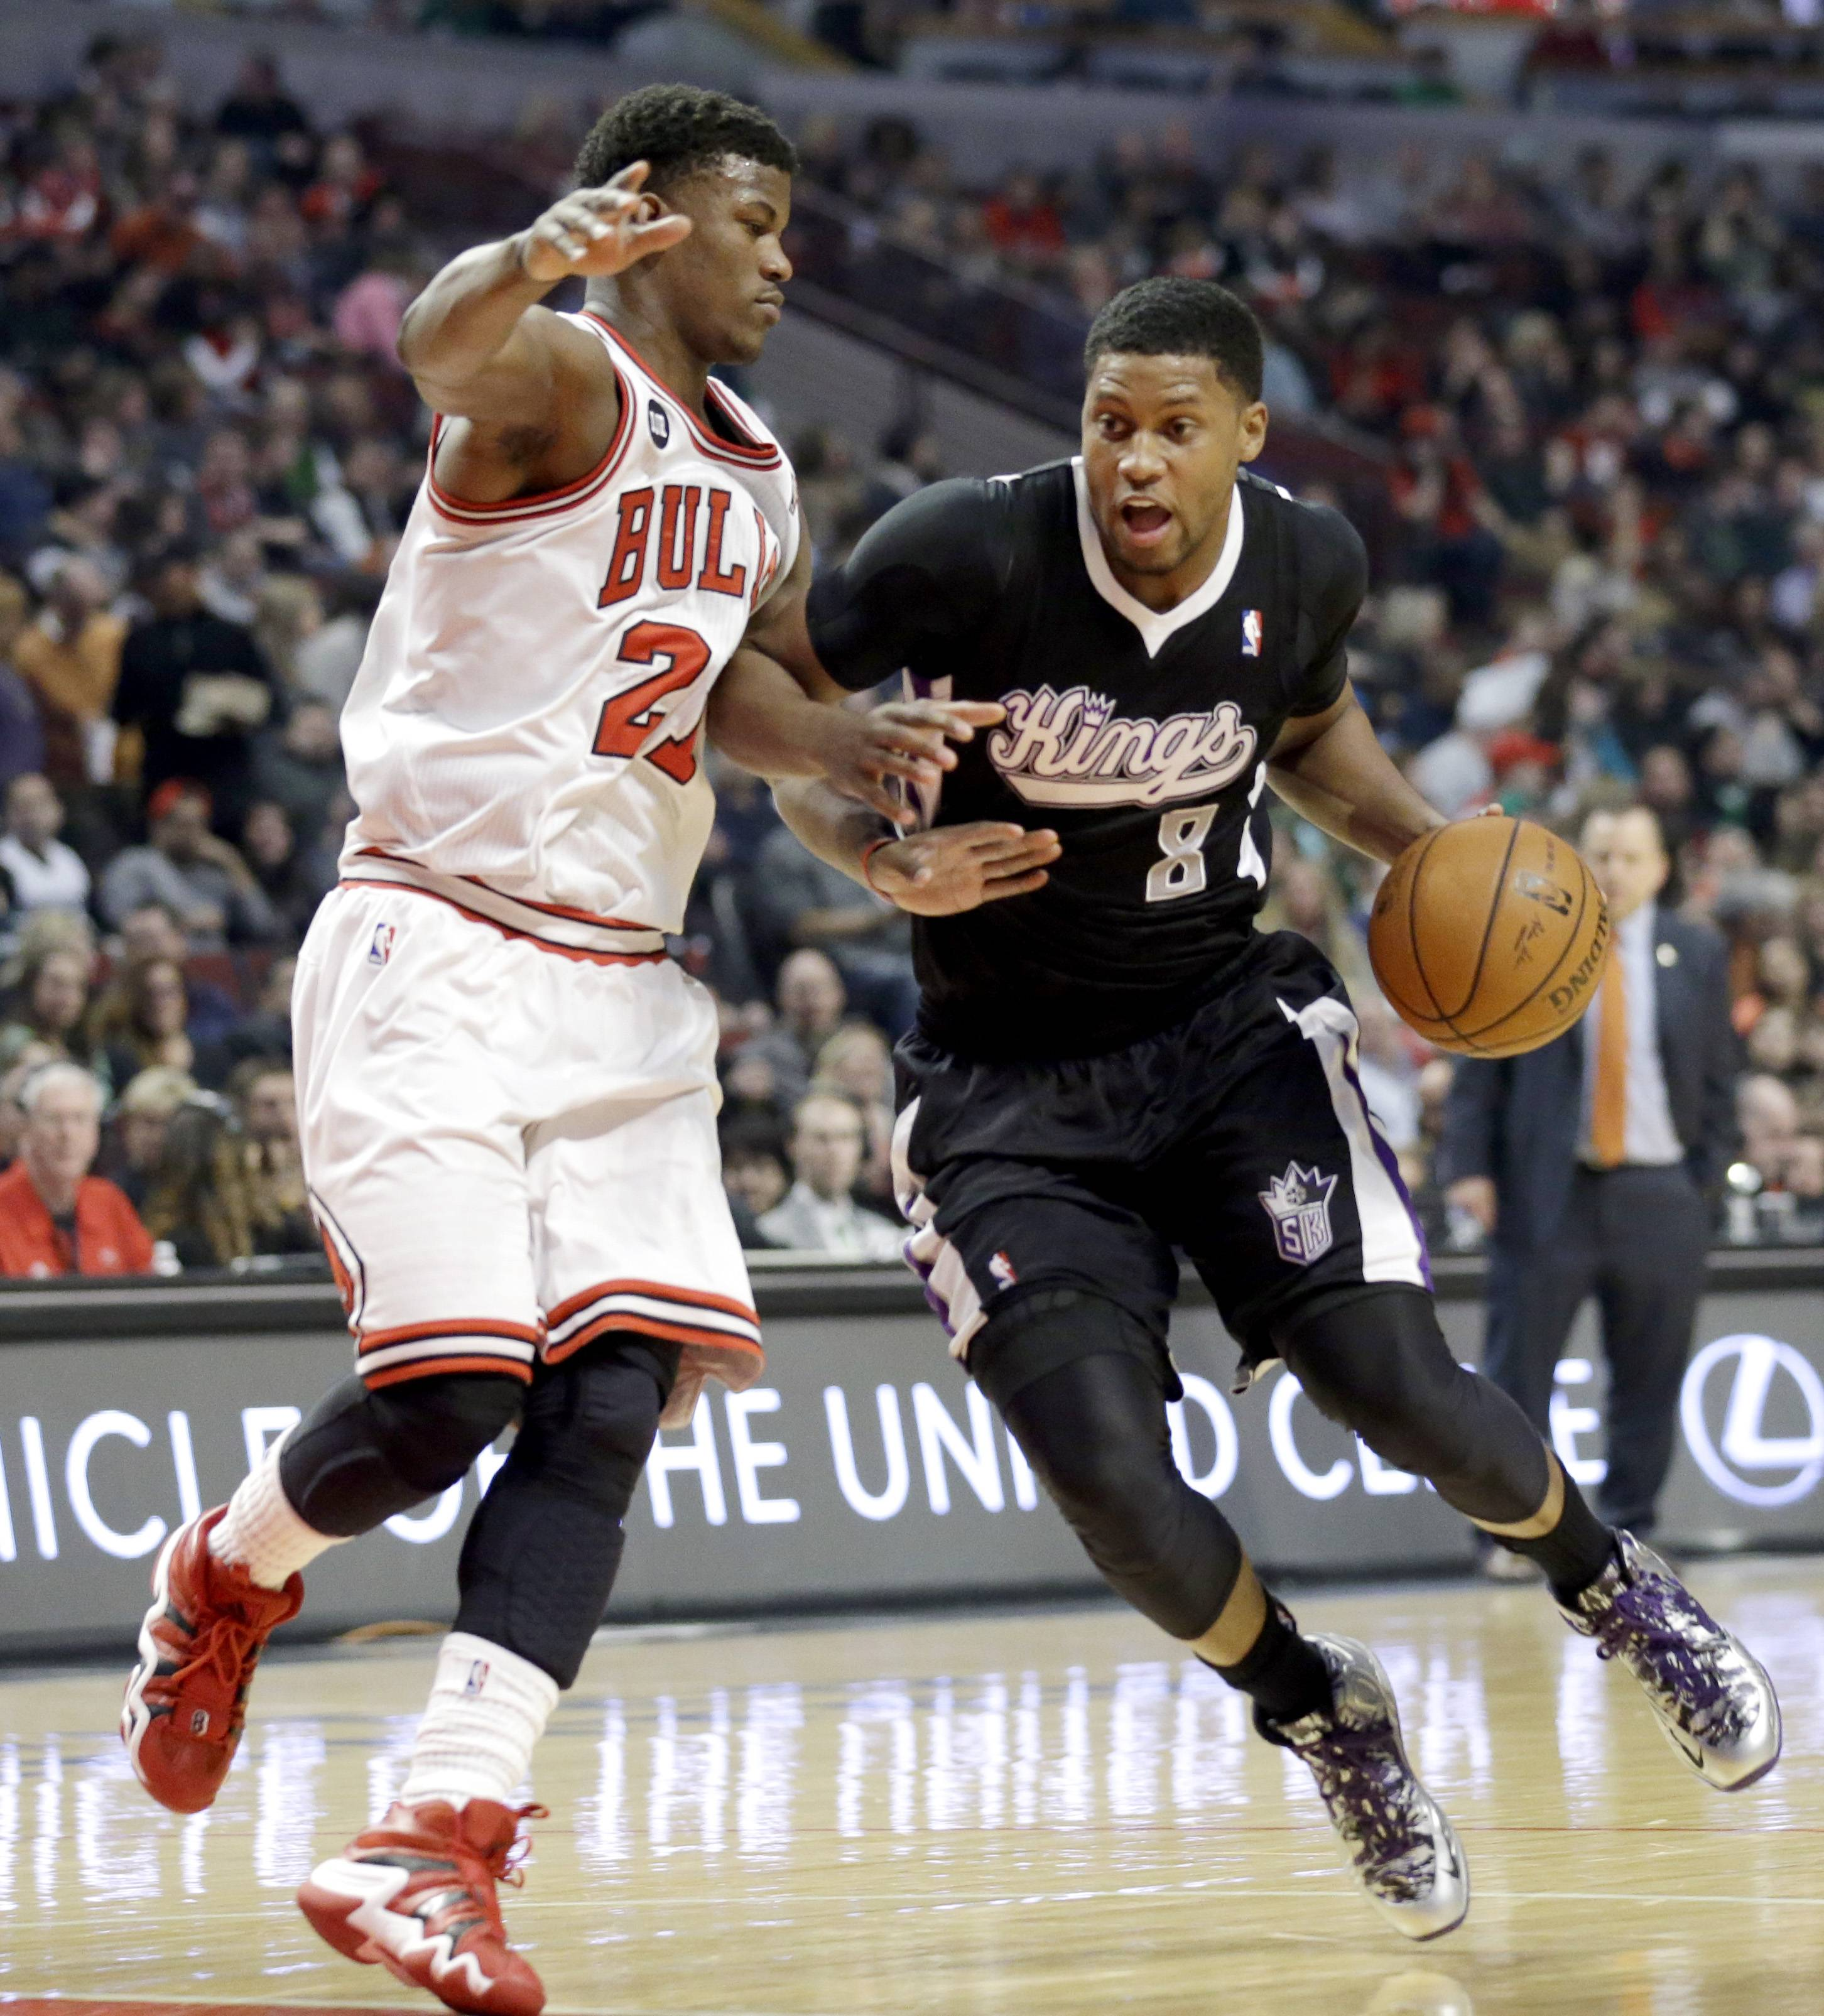 The Bulls' Jimmy Butler plays some tight defense on Kings forward Rudy Gay during Saturday night's victory over Sacramento.